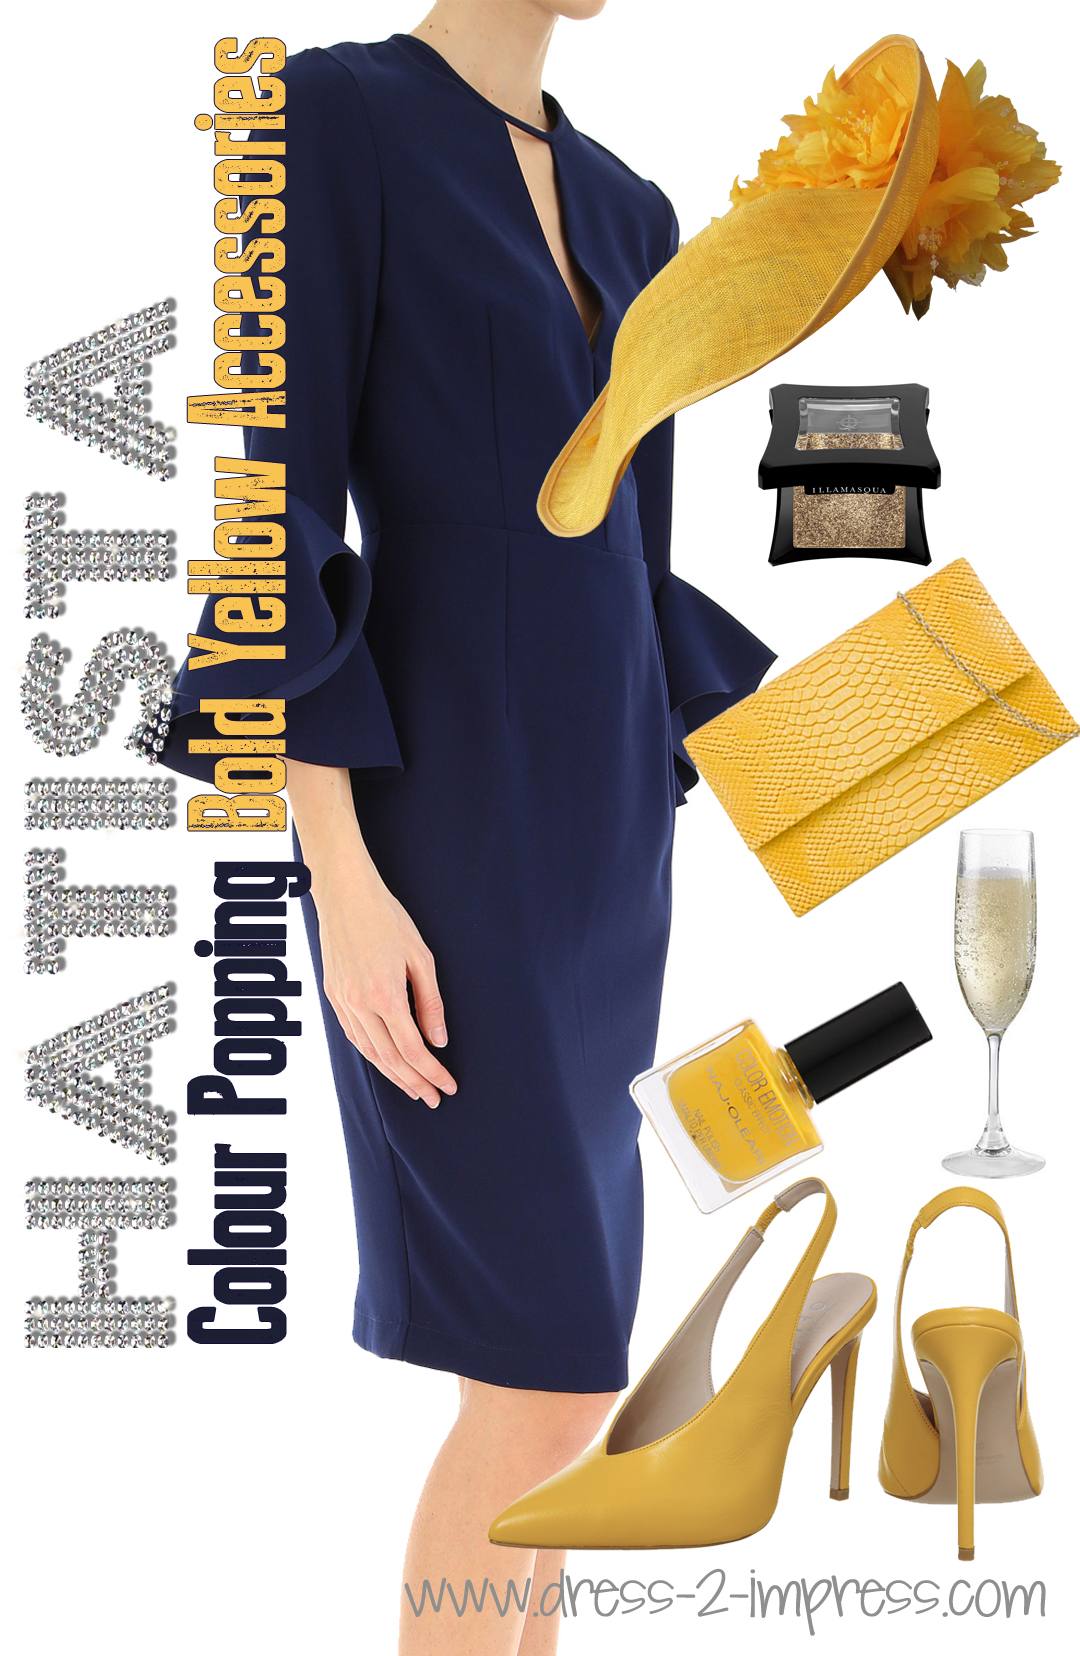 How to Wear Yellow for Racing Fashions. Yellow Hats for the Races. What to wear to the Races. What to wear for the Kentucky Derby. from THE HATISTA www.dress-2-impress.com #racingfashion #wearyellow #outfitinspiration #outfitideas #yellowoutfits #colourpop #colorpop